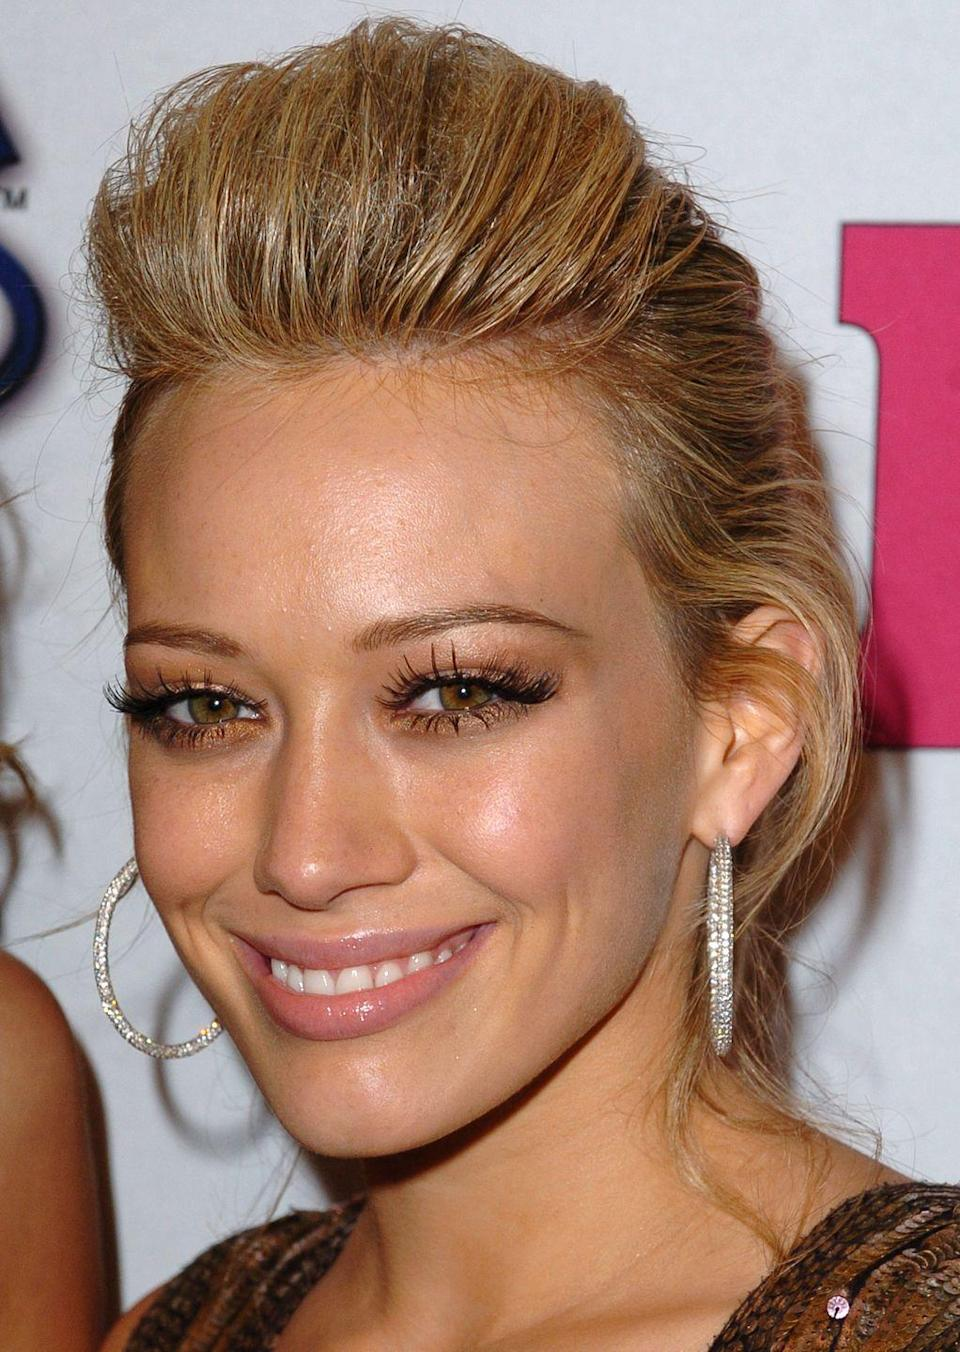 <p>This coiffed pony was a Hilary Duff staple during the mid-2000s — and based off of looks alone we assume it required large amounts of hair gel to achieve. </p>